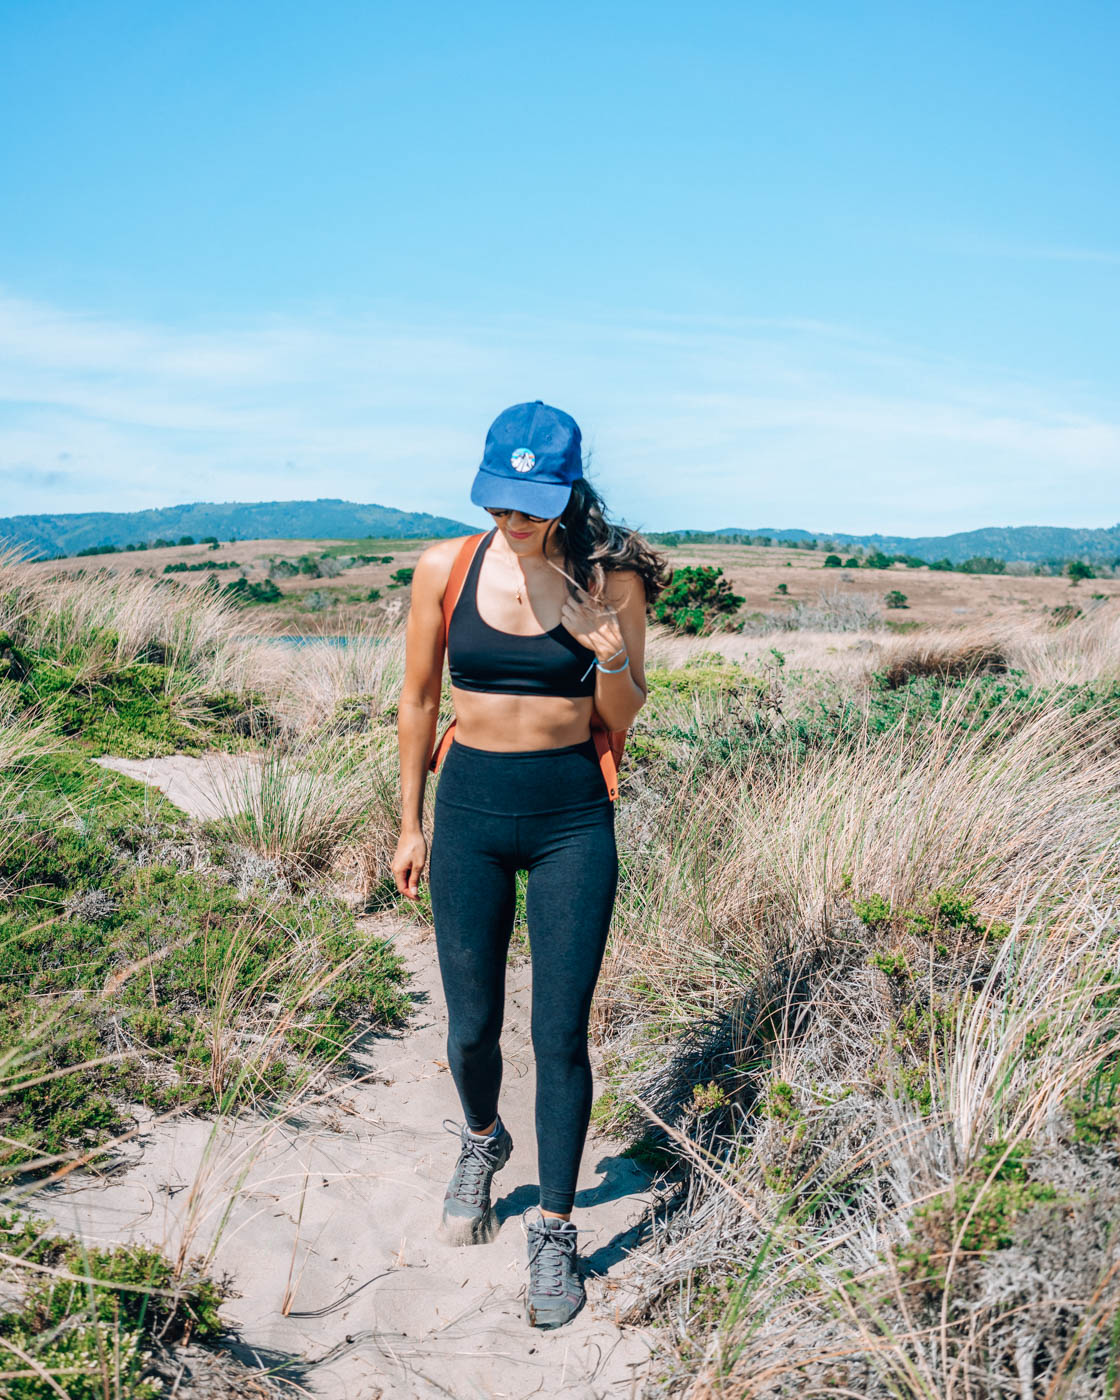 15 Ways to Prioritize More Time Outdoors + Backcountry Trip Recap   I recently went on a trip with Backcountry where we hiked, stand-up paddleboarded and connected with nature. It got me thinking about the great outdoors and how important it is for our mental health that we get outside each day. So, I put together a list of hacks to help you prioritize more time outside. Check it out. #getoutside #standuppaddleboard #naturewalks #hikingoutfit #outsideactivities